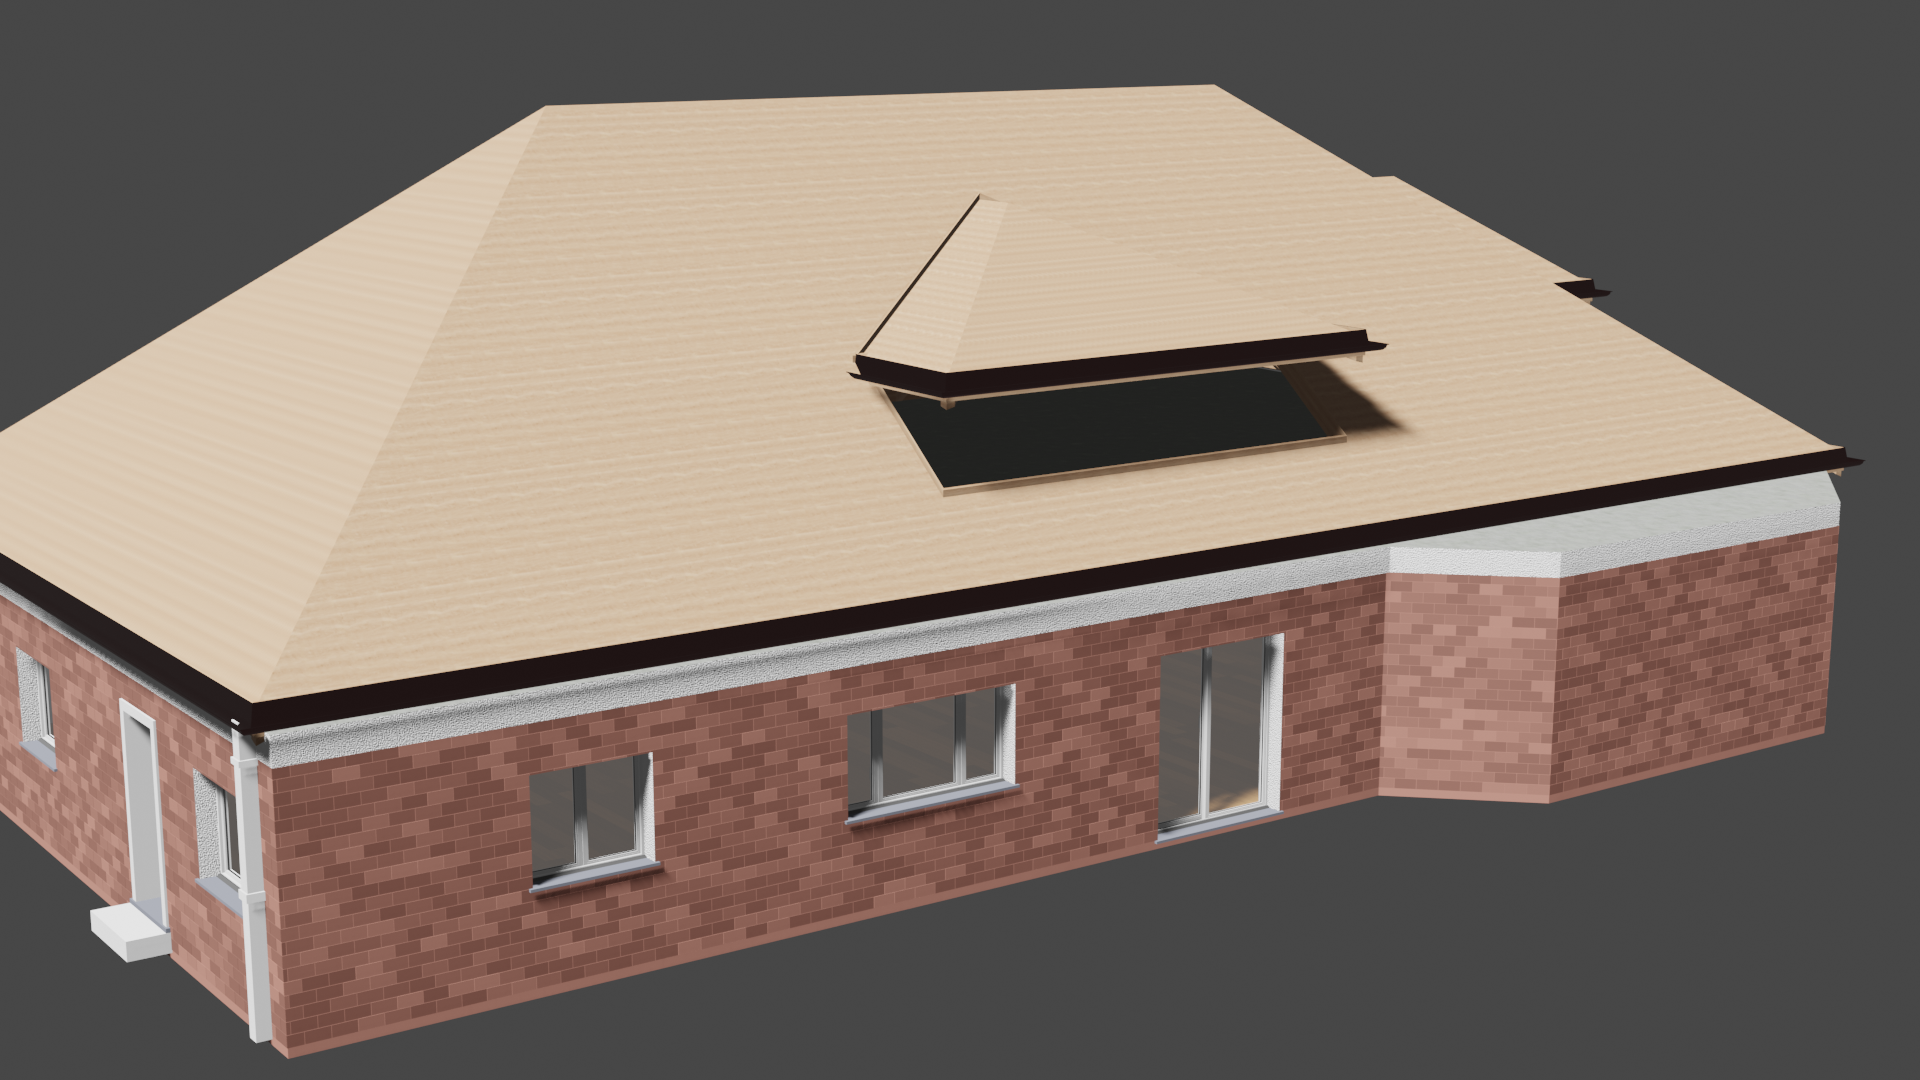 Archipack pro red brick building